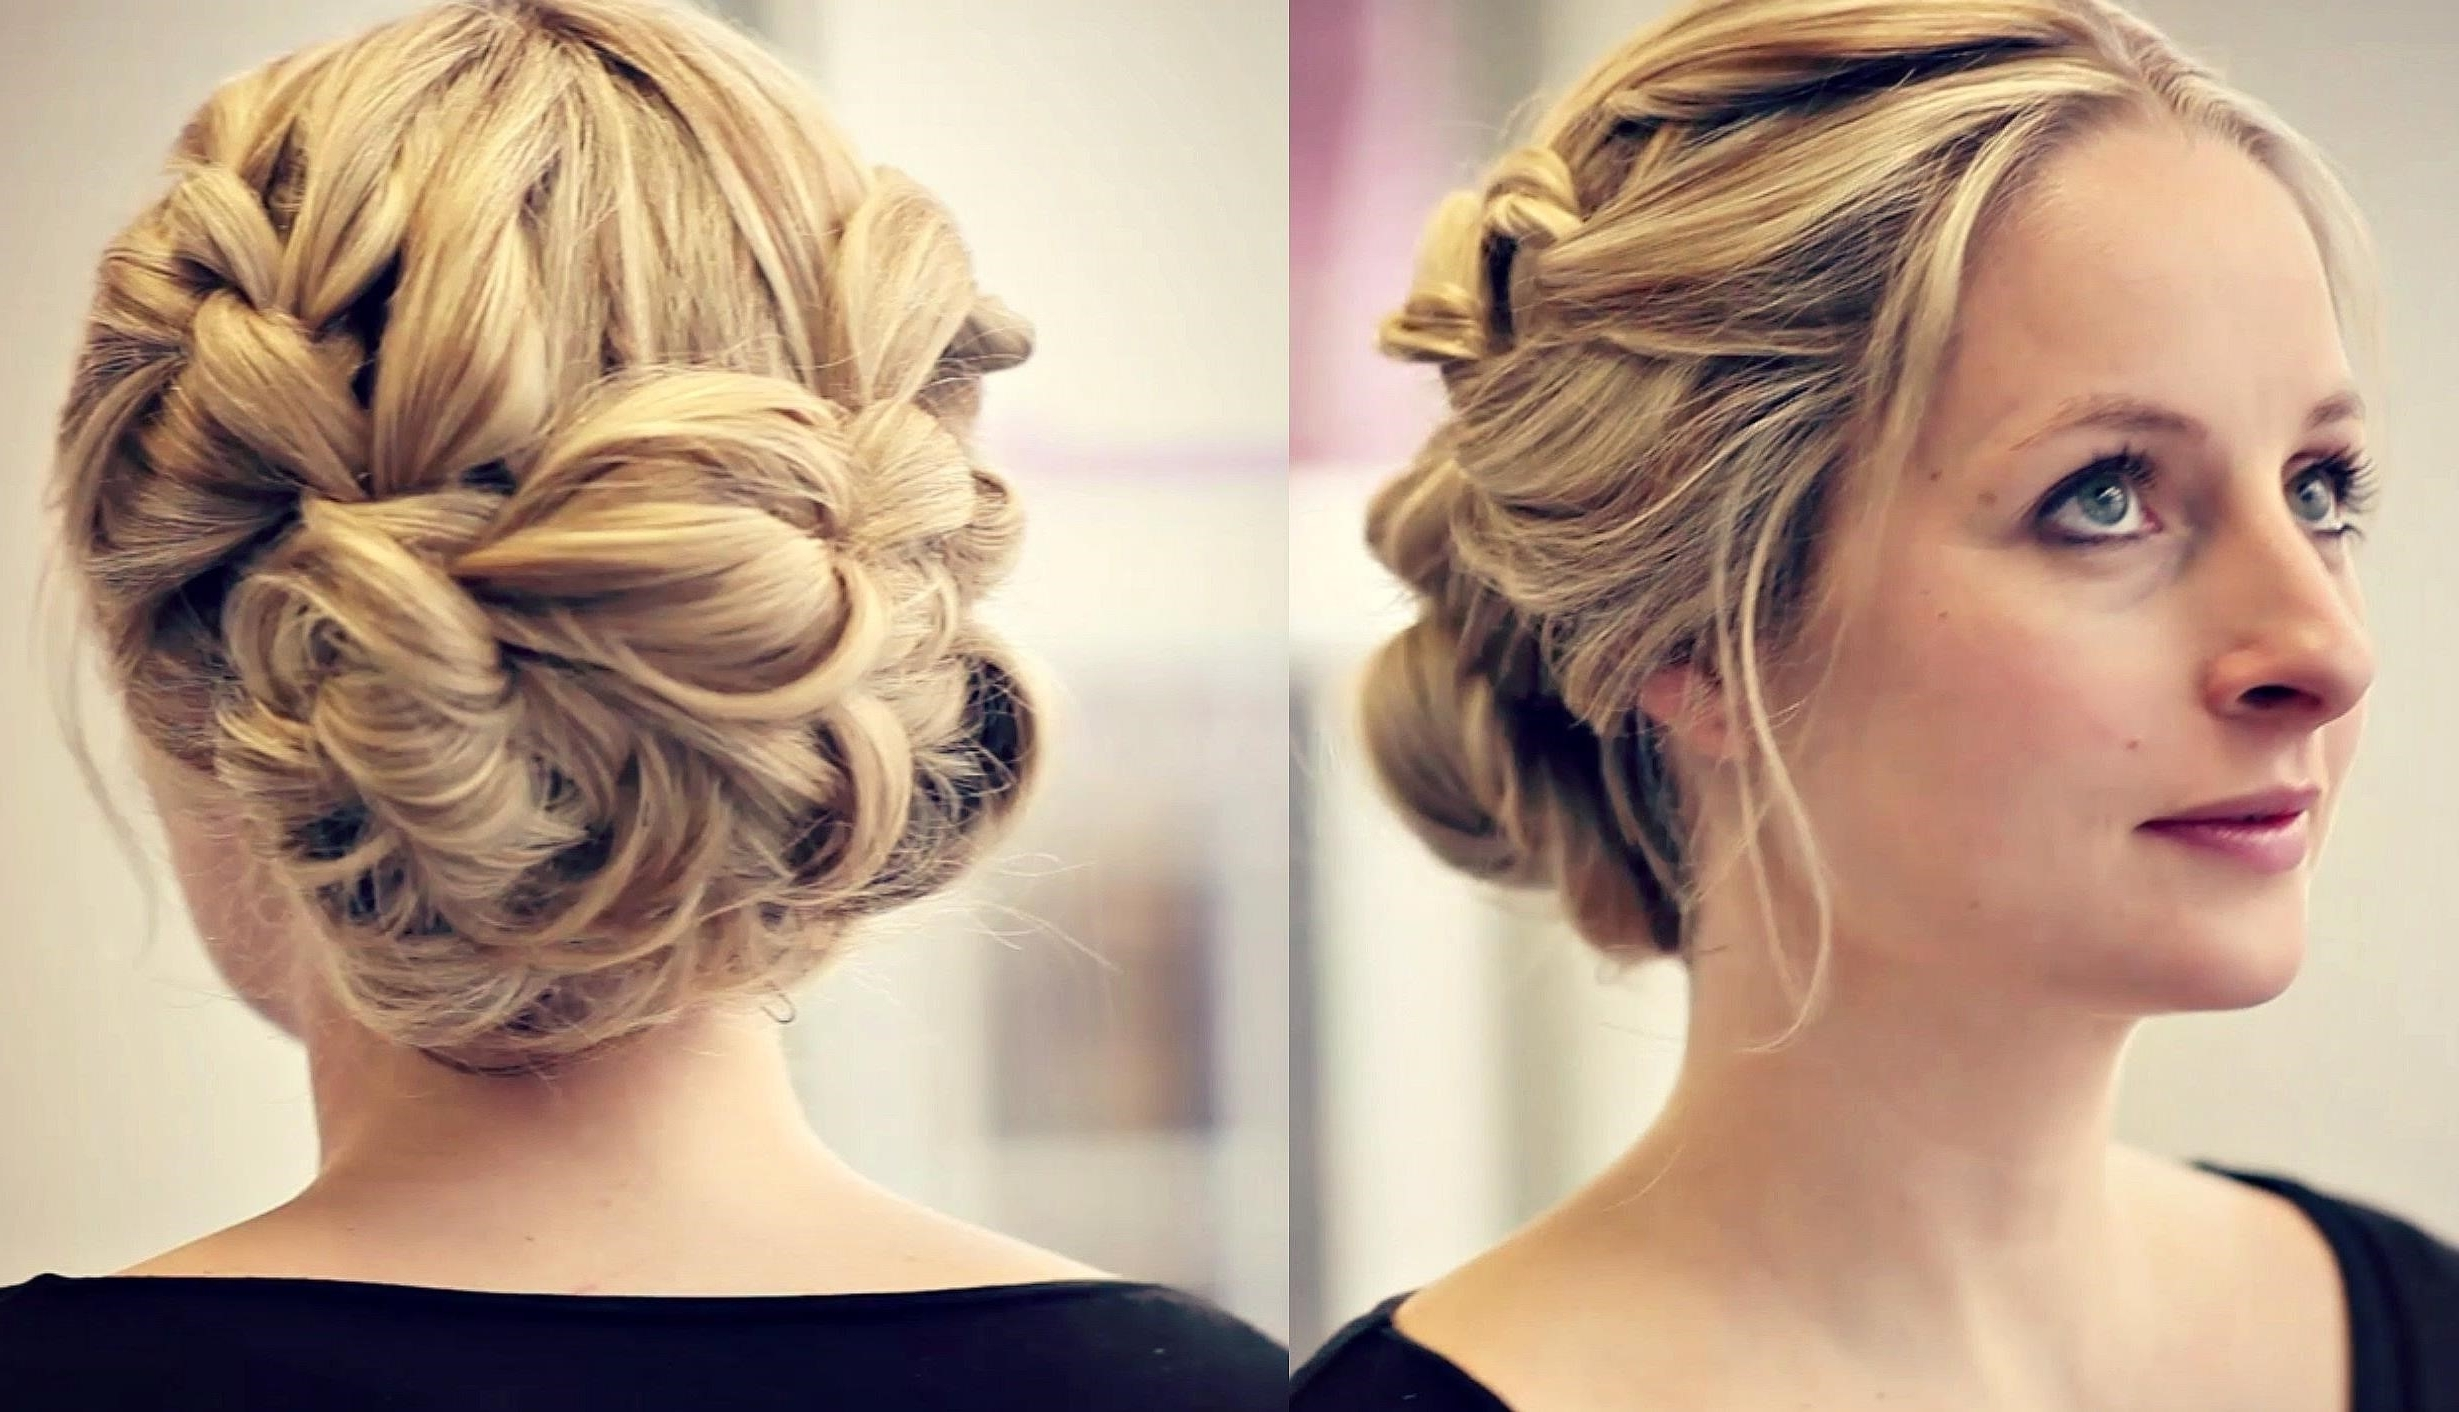 Most Current Wedding Hairstyles For Bride And Bridesmaids Regarding Ideas Beautiful Simple Updos For Wedding Weddings Bridesmaids (View 10 of 15)